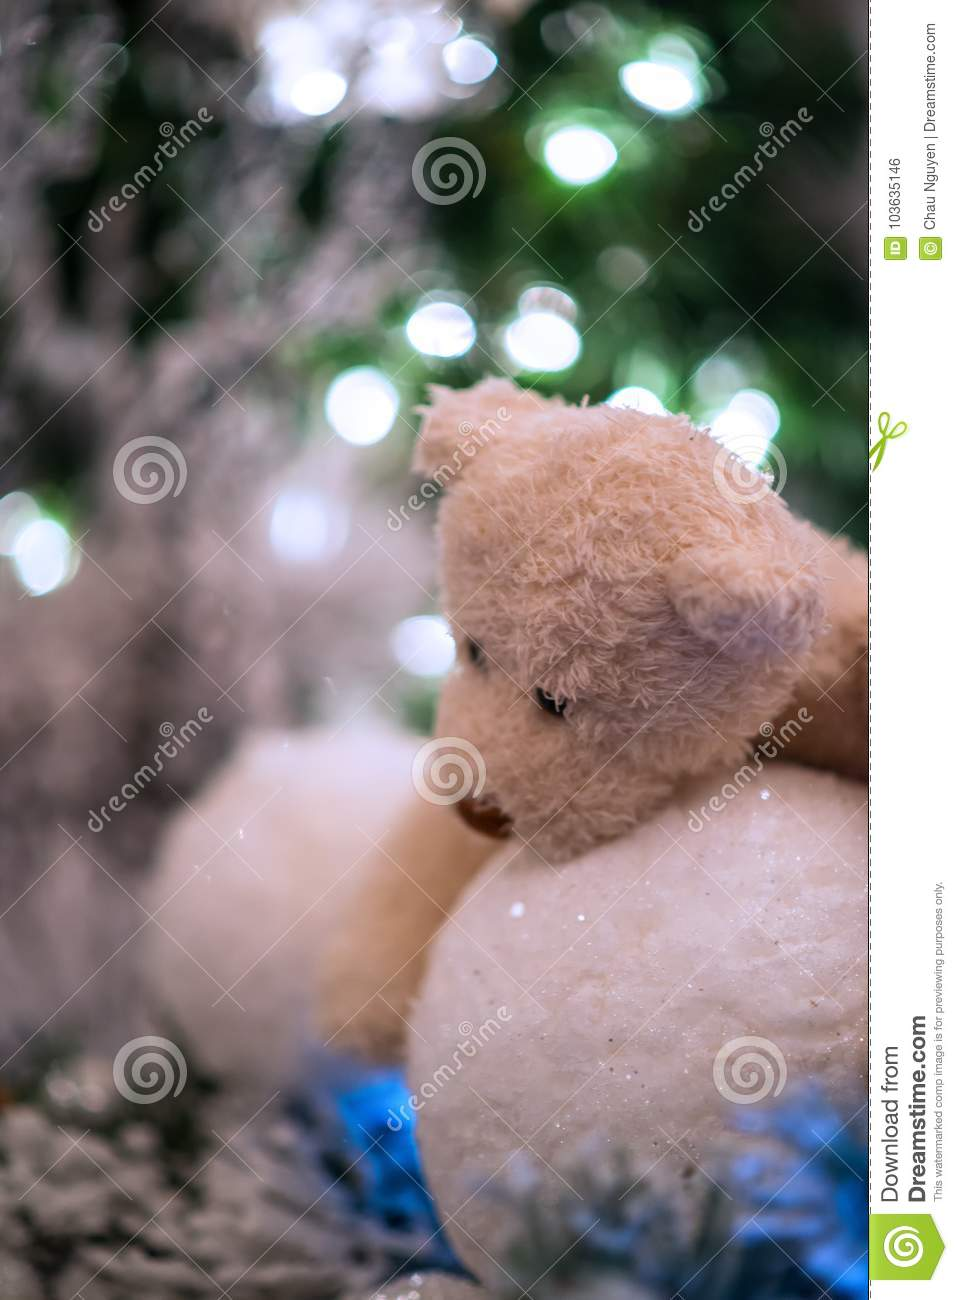 Teddy bear hugs white snowballs with christmas lights brighten up in the background.